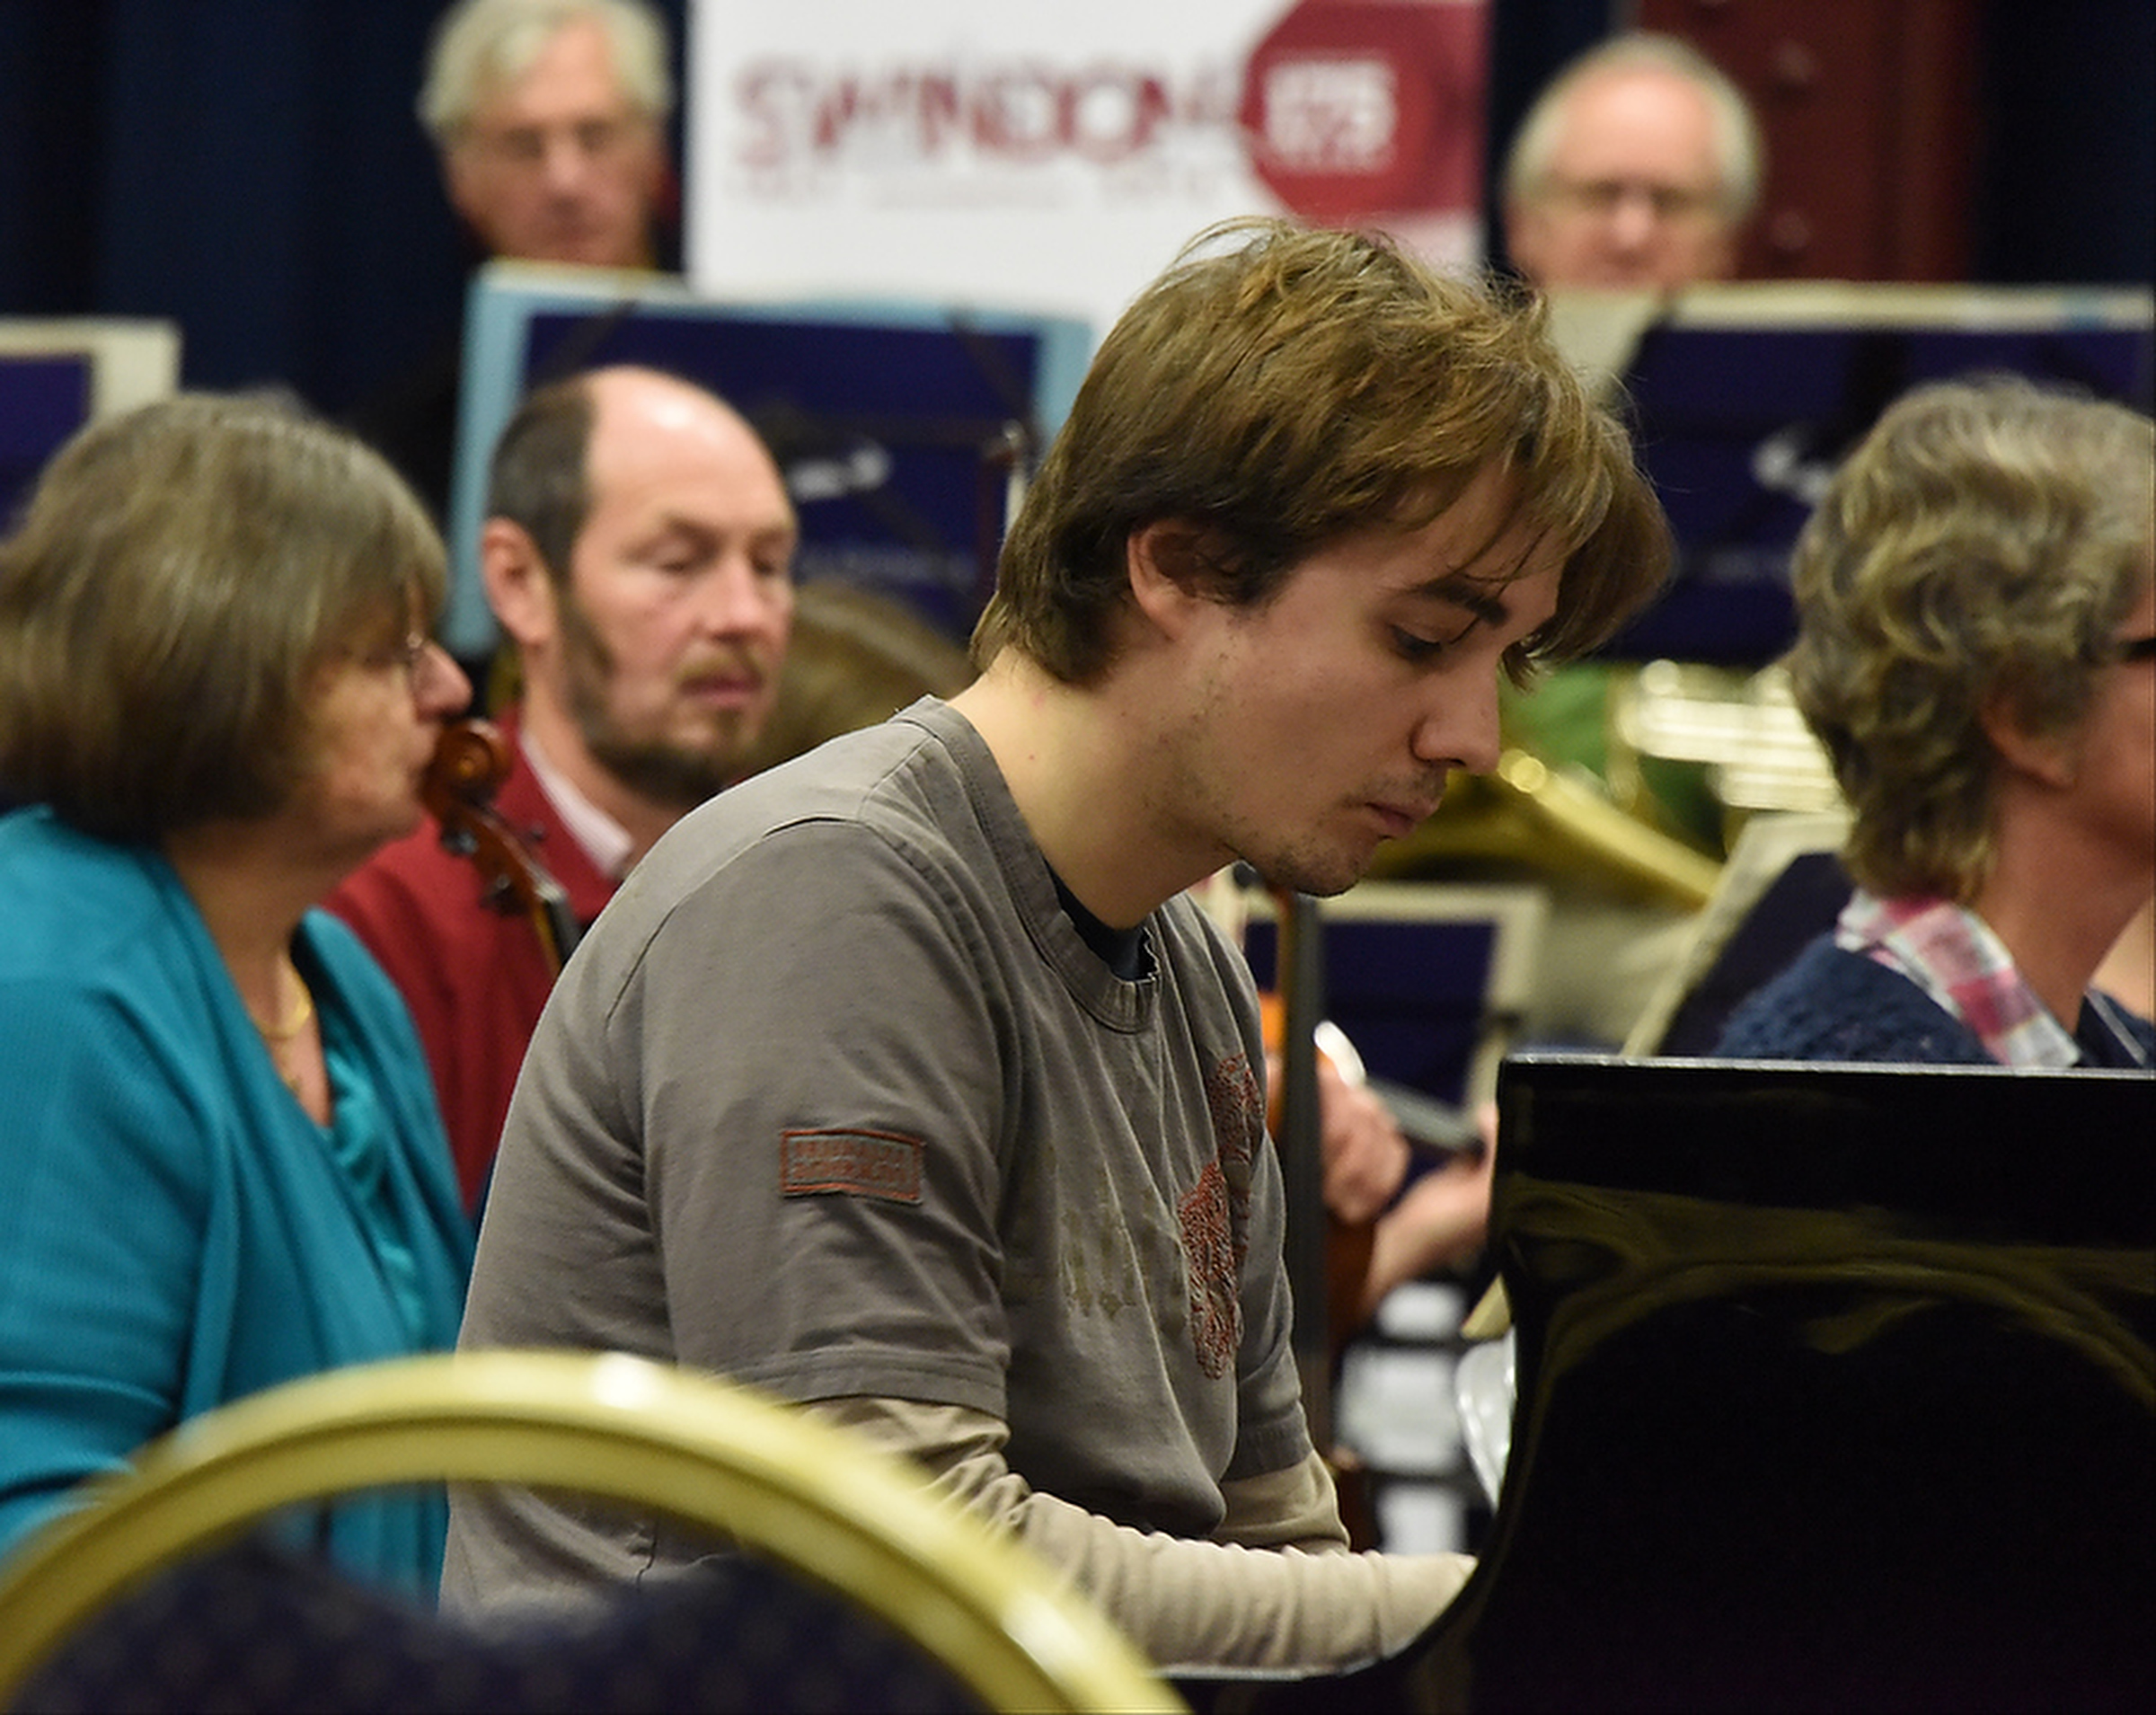 Soloist, Daniel Lebhardt at STEAM Museum for the Swindon 175 concert playing Rachmaninov Piano Concerto No. 2